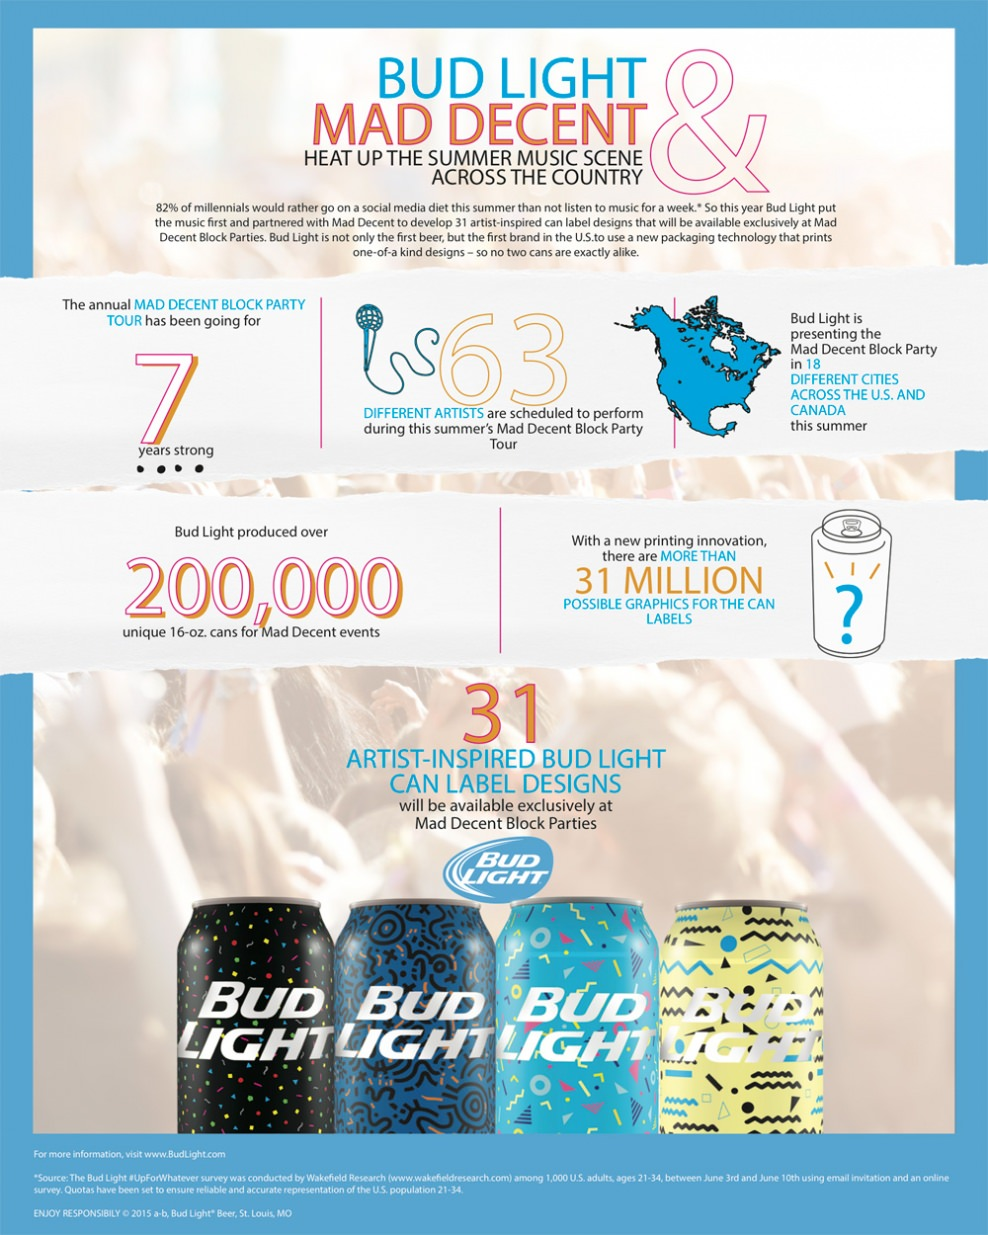 budlight-maddecent